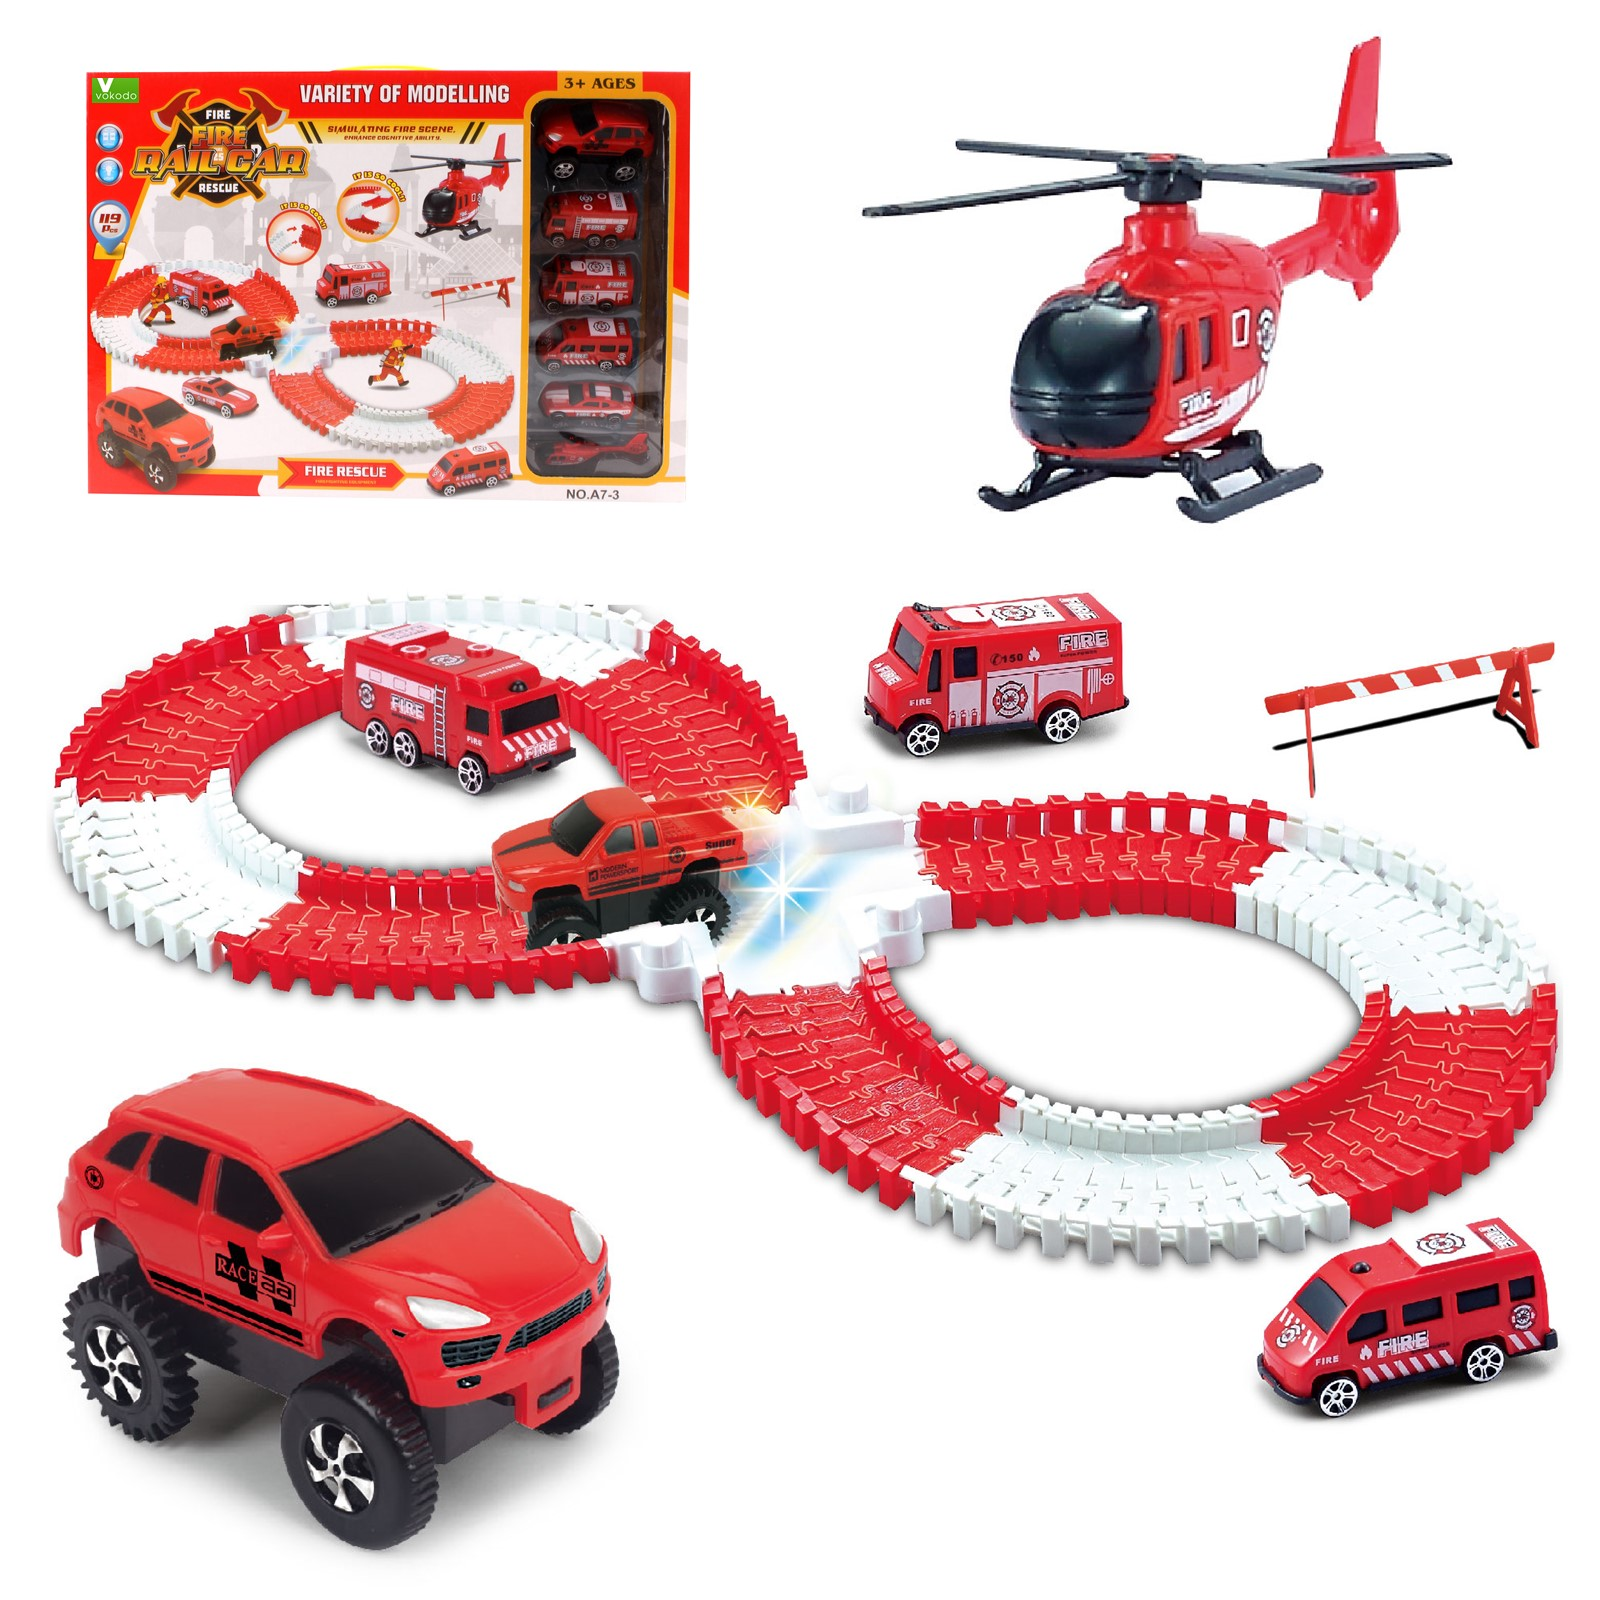 Vokodo Fire Station Track Set 119 Piece With Light Up Race Truck 4 Cars Helicopter And Firefighter Figurines Flexible Rails Kids Building Racetrack Firetruck Playset Great Gift For Children Boys Girls